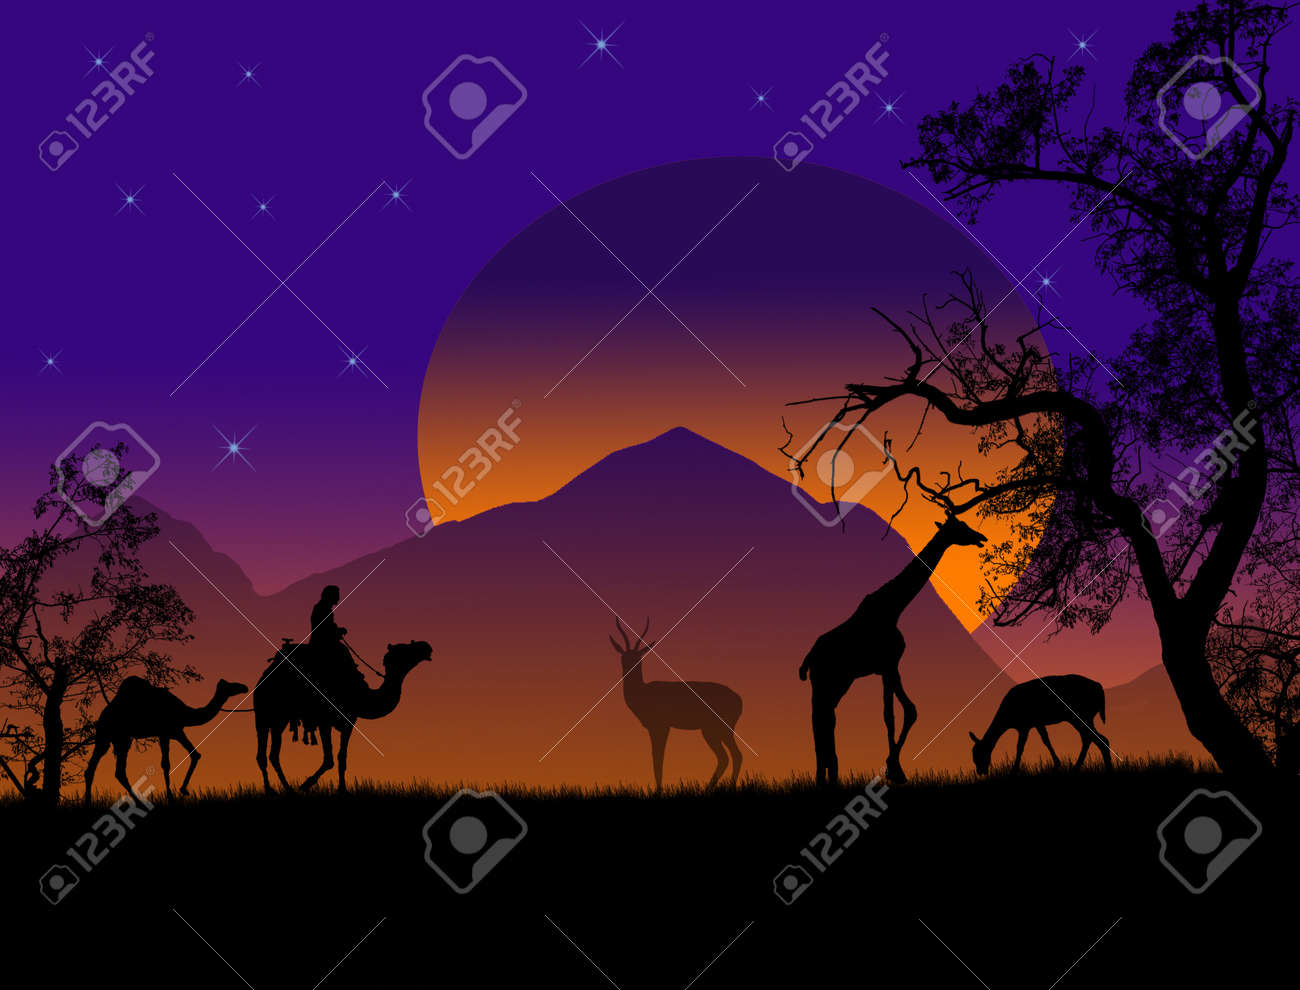 Safari - silhouettes of wild animals and bedouin with camels, vector background Stock Vector - 13862368